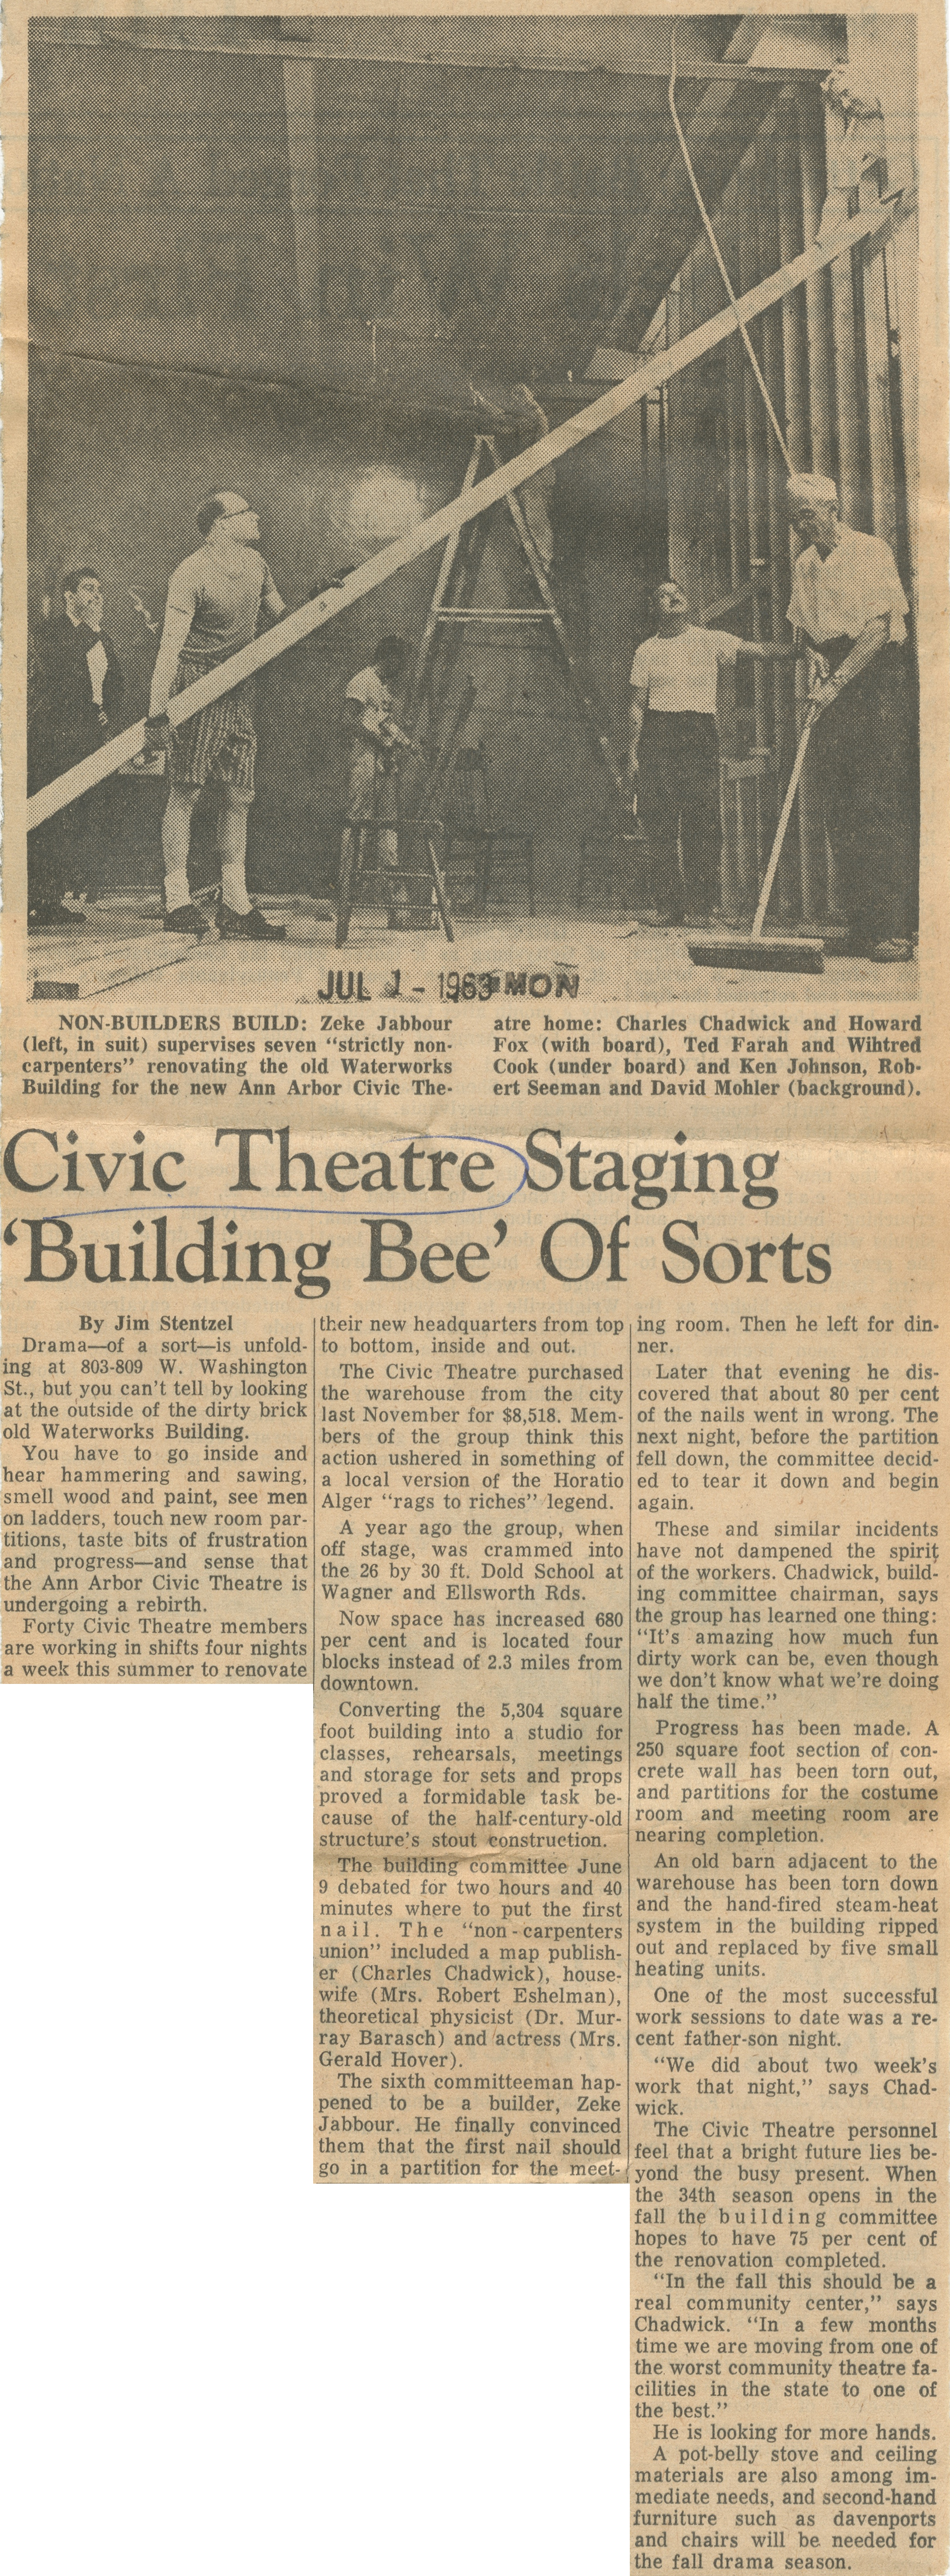 Civic Theatre Staging 'Building Bee' Of Sorts image